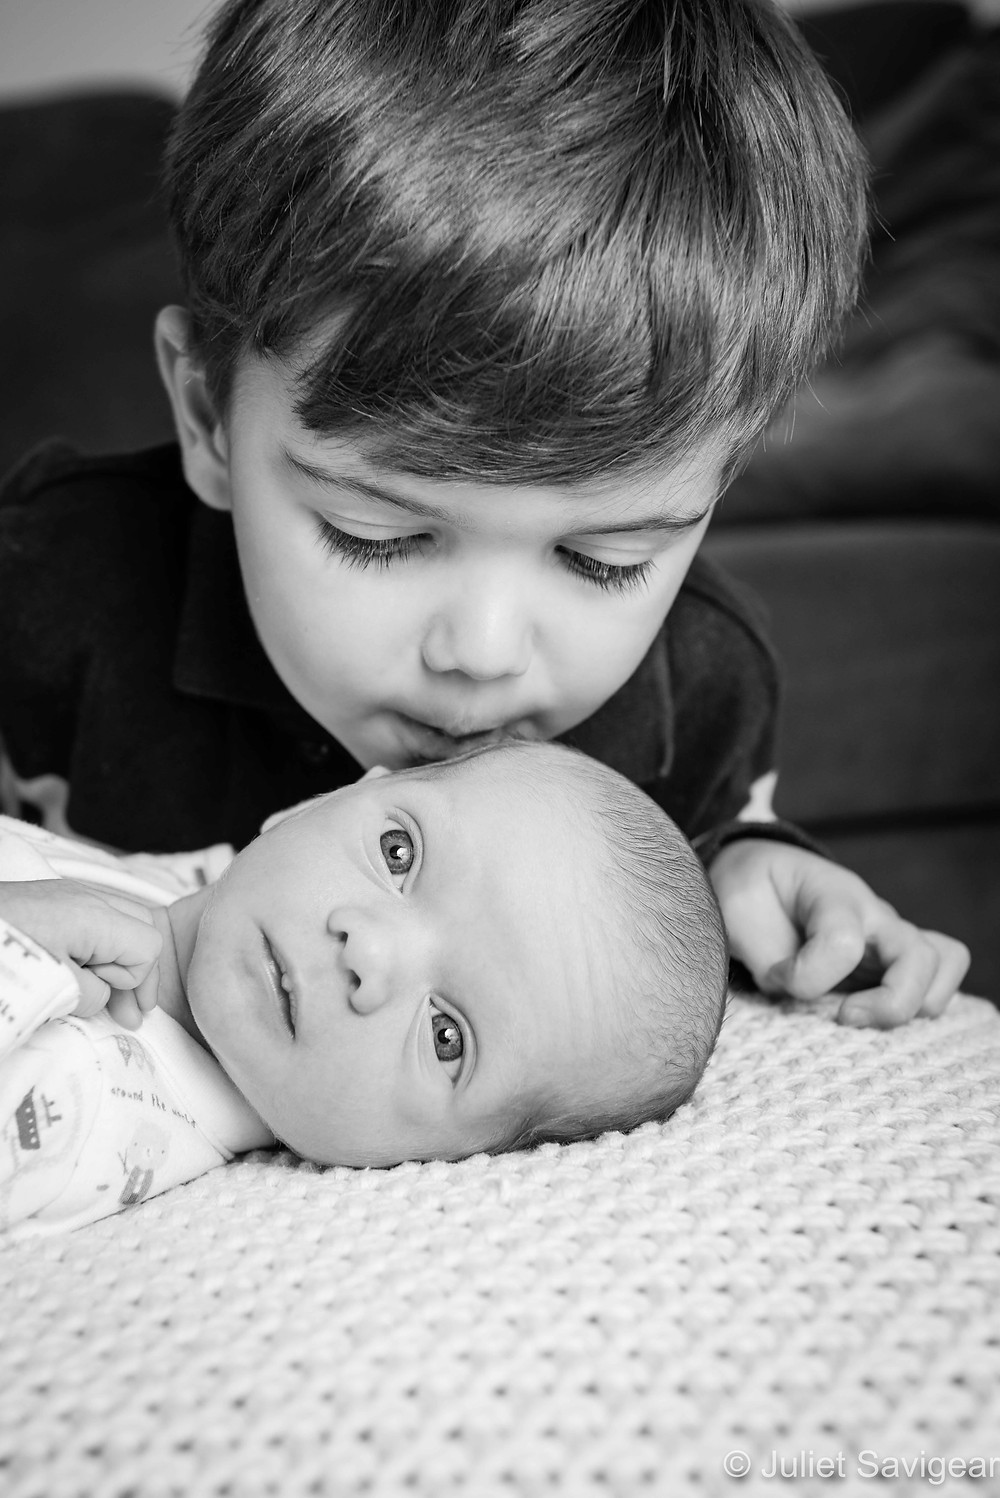 Brother's kiss for baby